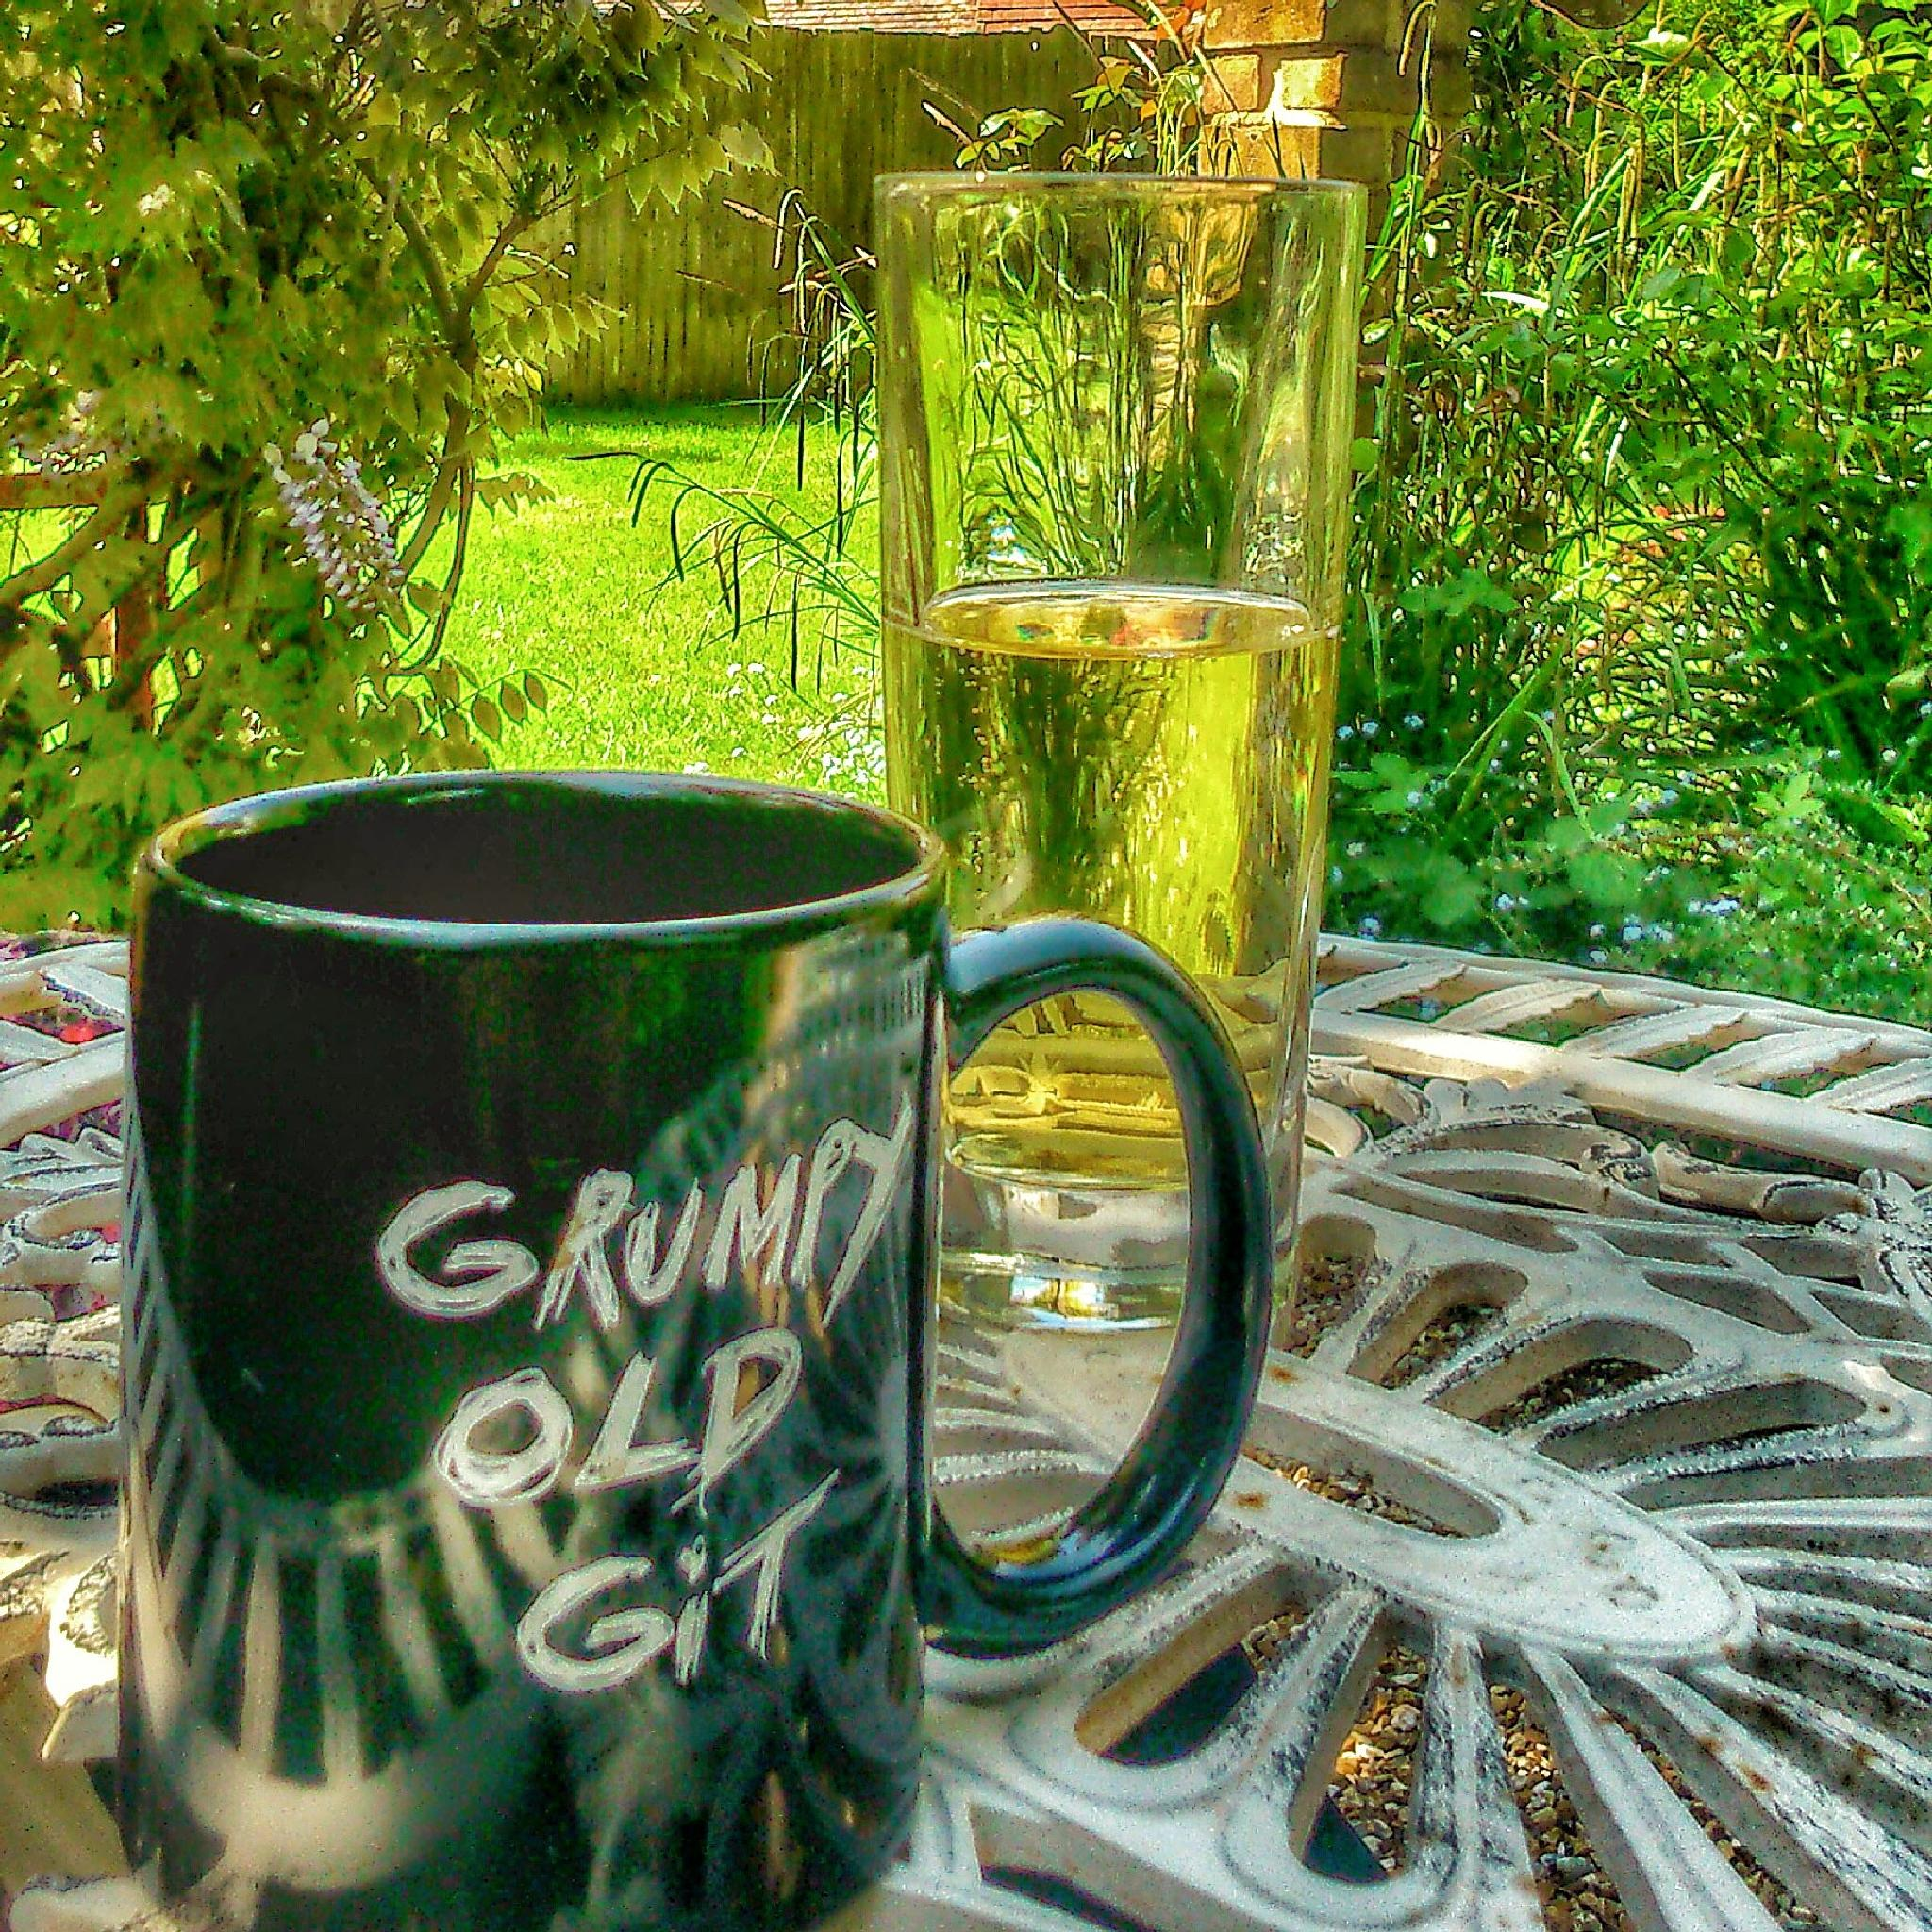 DRINKS IN THE GARDEN by BugOlsson